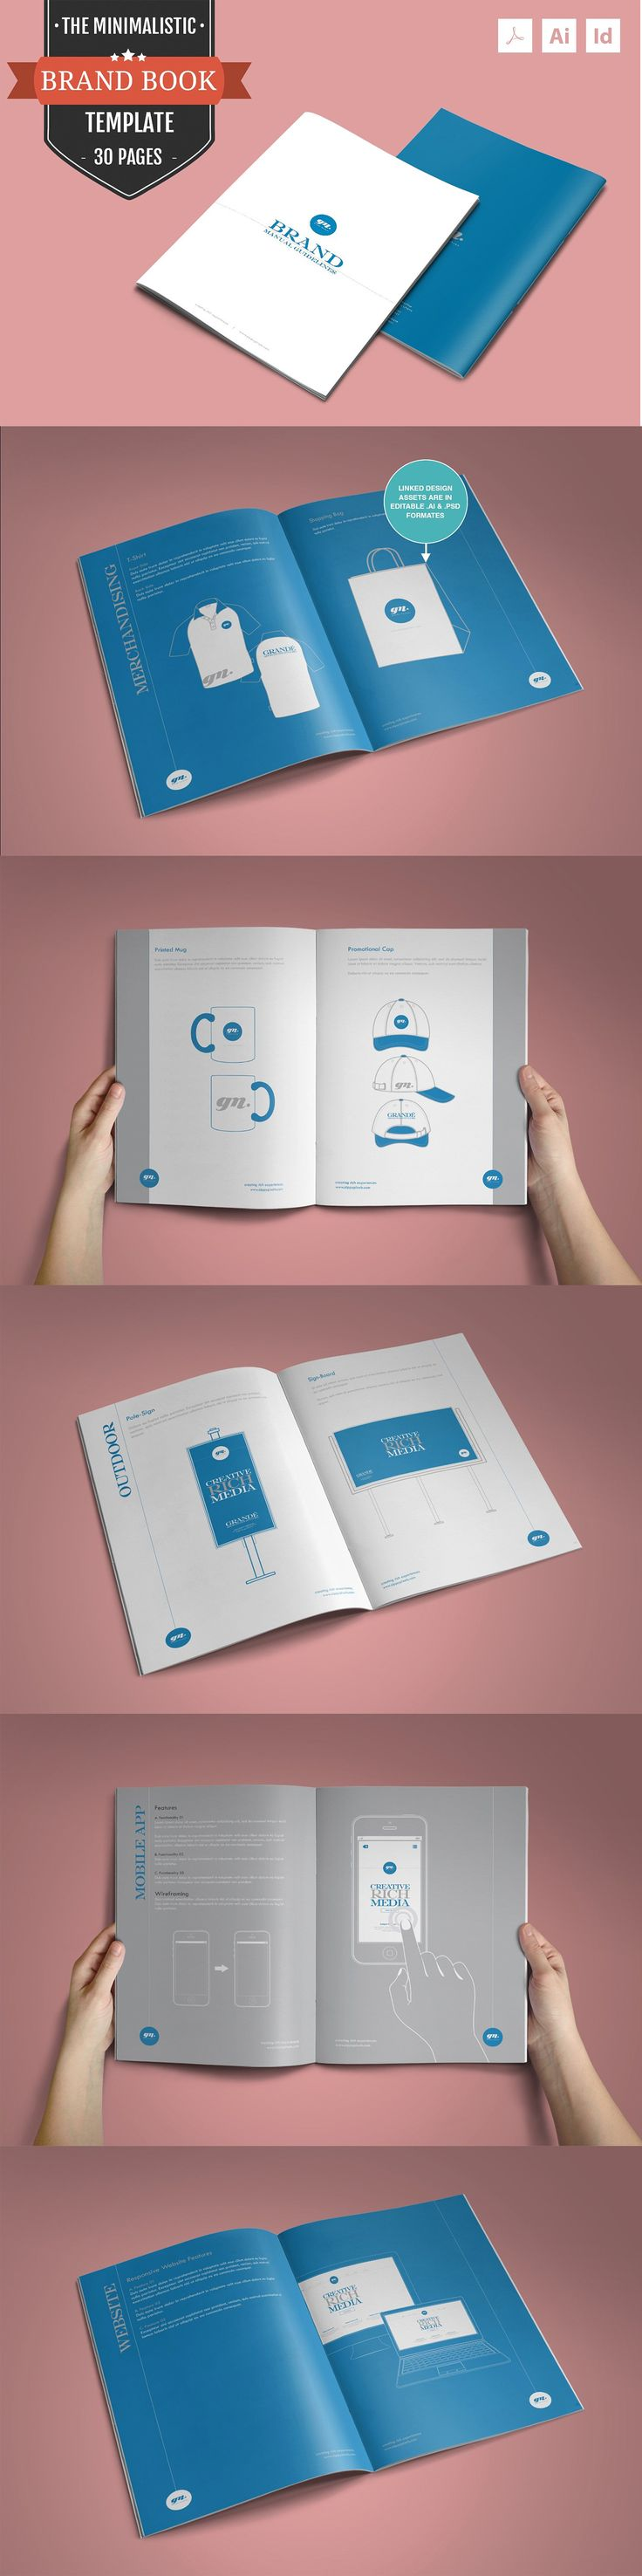 The Minimalistic – Brand Guidelines Template PDF